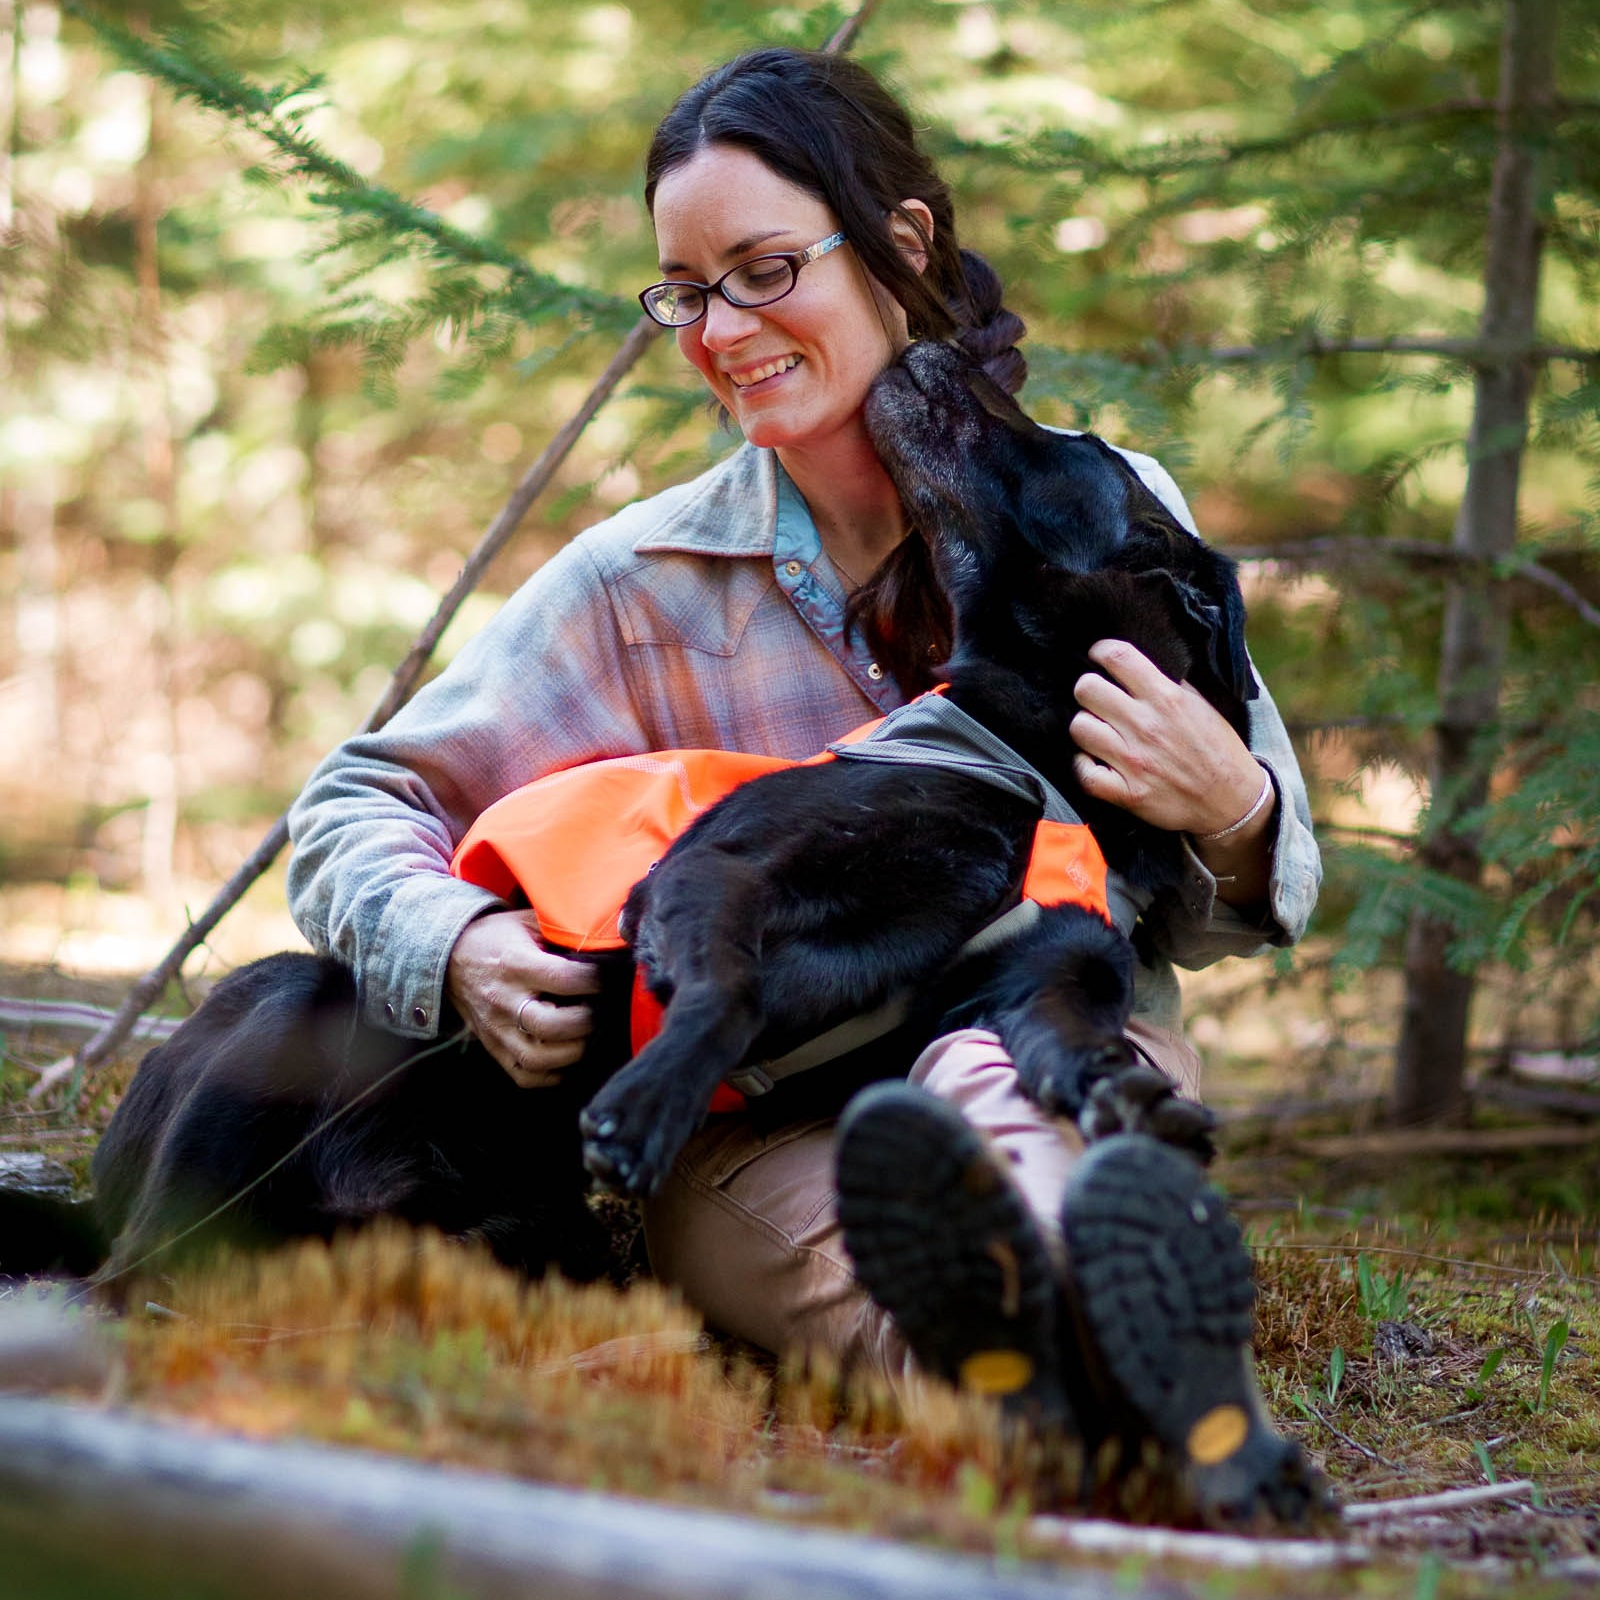 Jennifer Hartman    Bounder, Field Research Scientist, Instructor   Jennifer has been in the world of dog detection work for 13+ years. She has traveled to Asia and Africa for wildlife conservation studies. Like most Rogues, Jennifer prefers to stay out of the spotlight and help from behind the scenes. She has been the backbone of other detection dog programs and did not shrink from the responsibility of building Rogues from scratch. A badass in the field and in the office, Jennifer coordinates all of Rogue's projects when she's not off saving the world with her trifecta of Max, Scooby, and Filson.